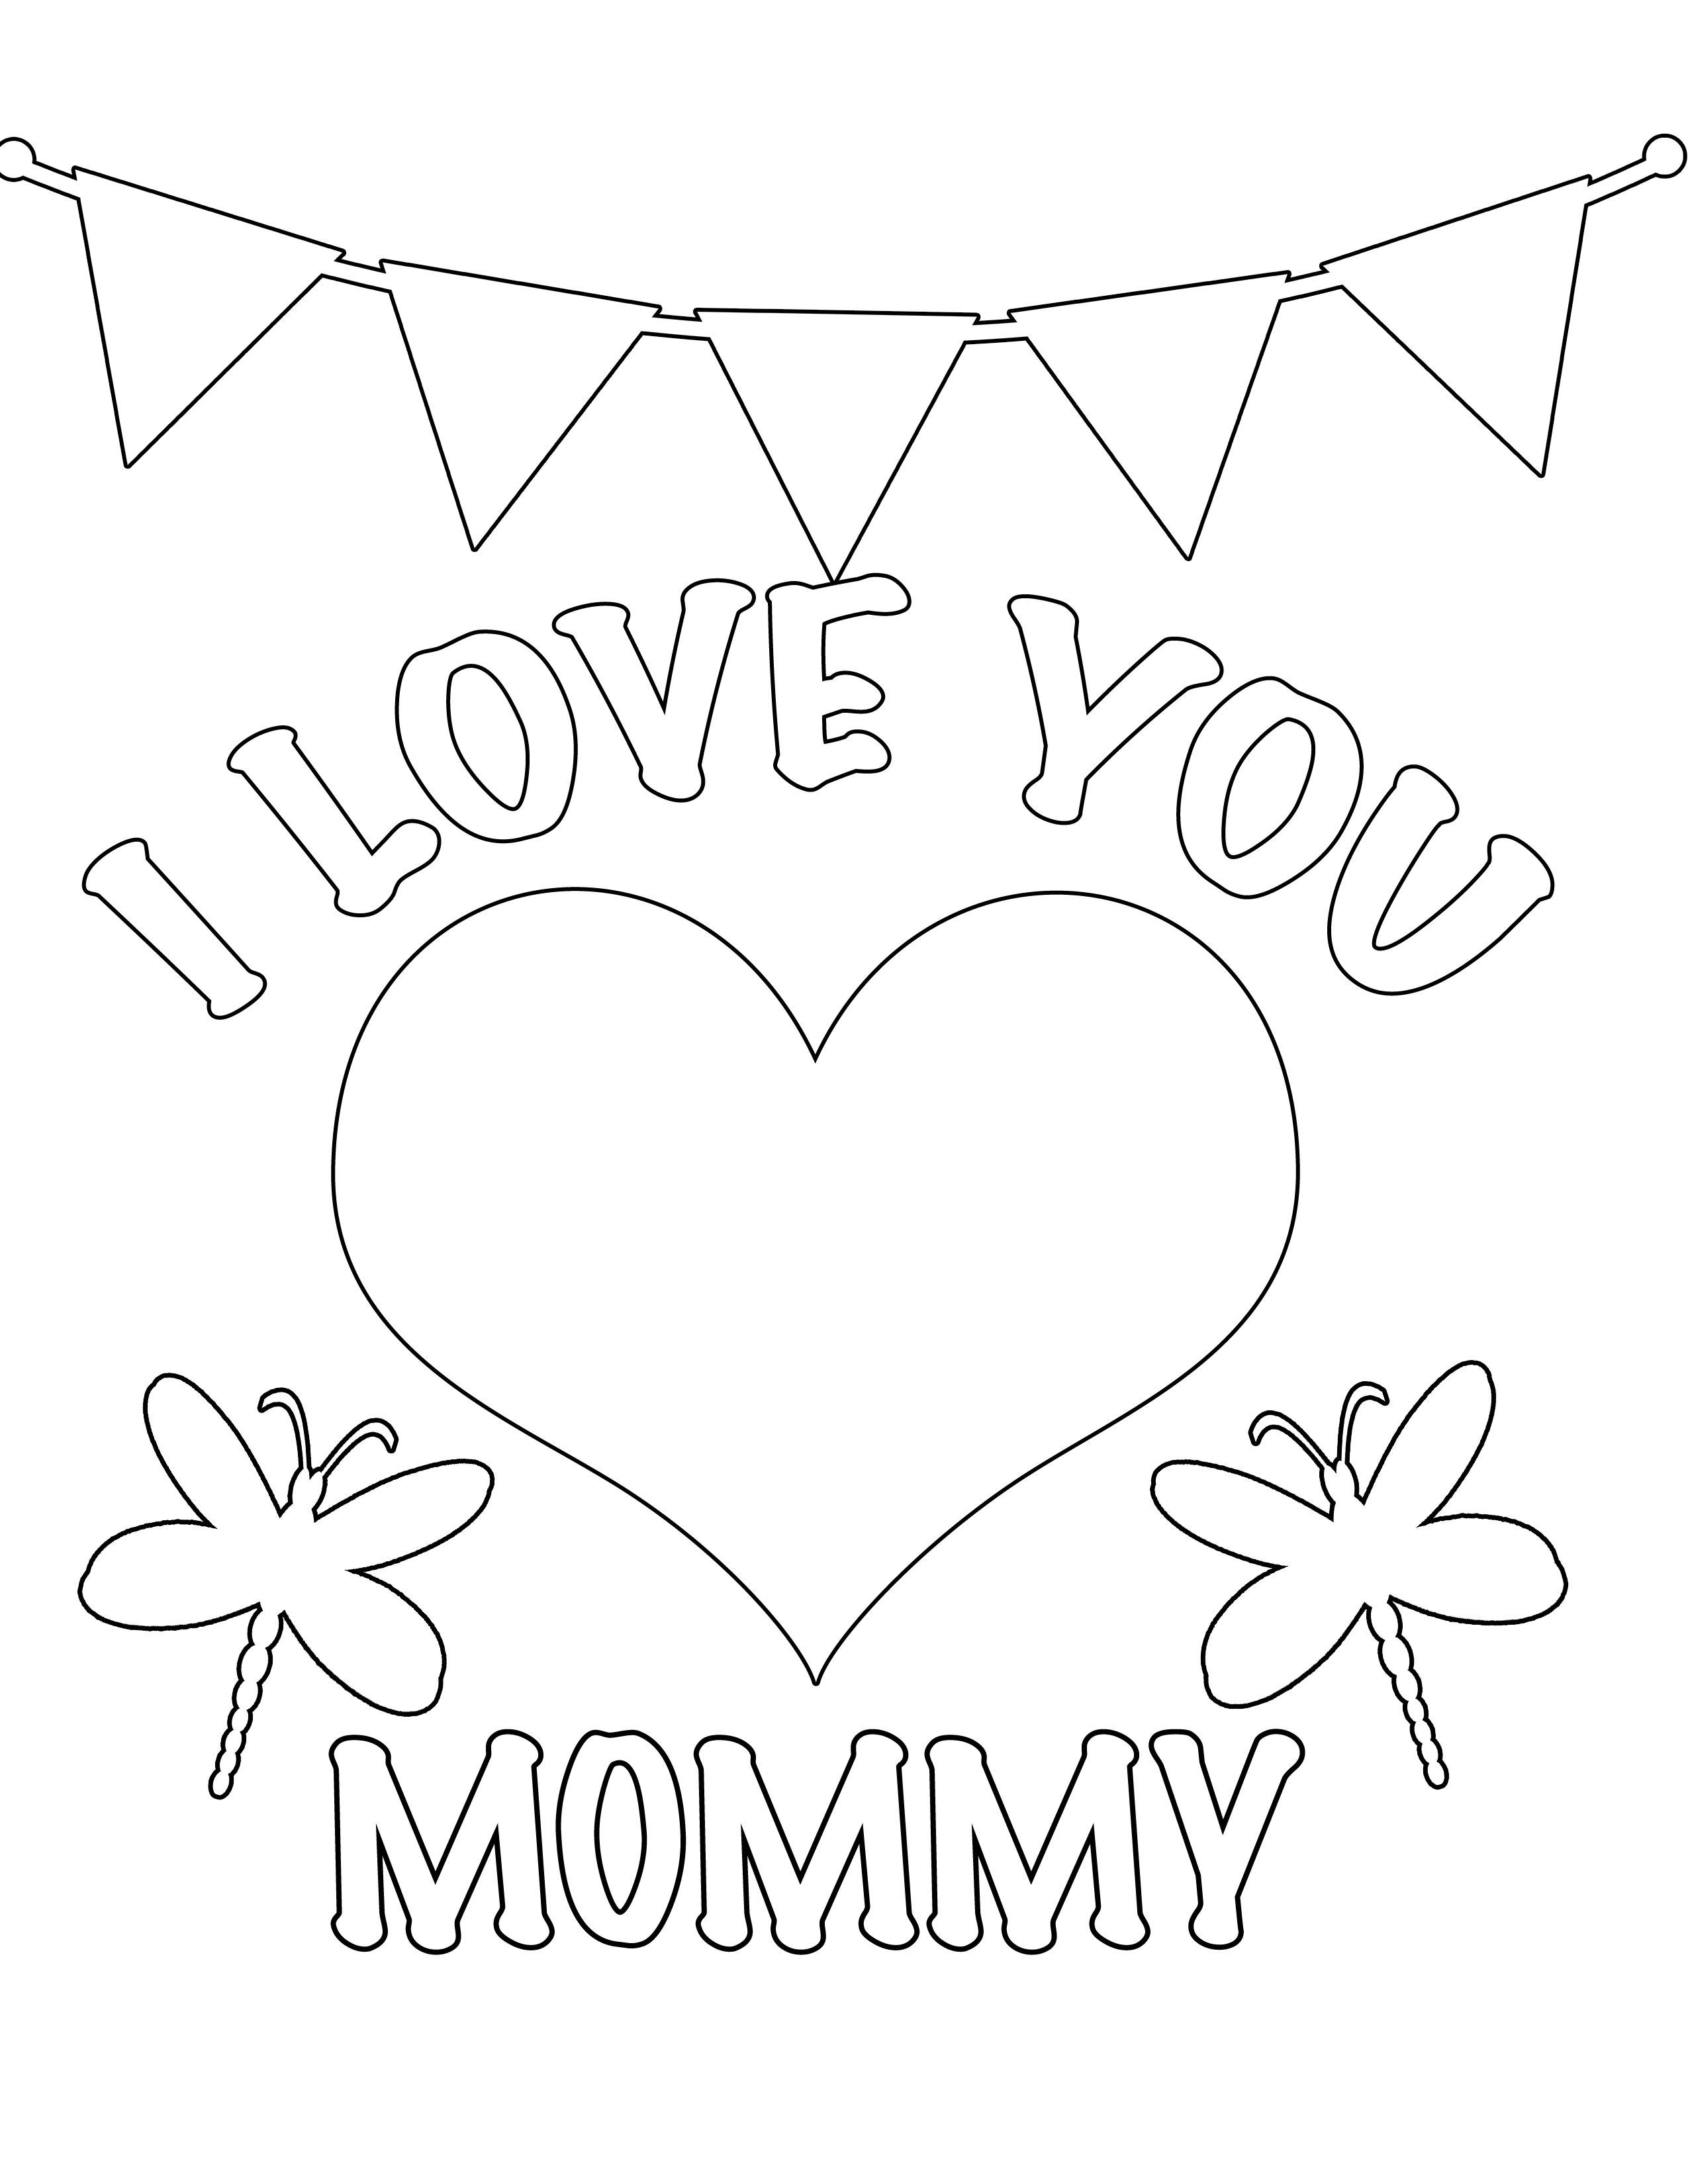 Improved Color Pages For Mom Best Archives Coloring In New Sheets Mom Coloring Pages Valentine Coloring Pages Birthday Coloring Pages